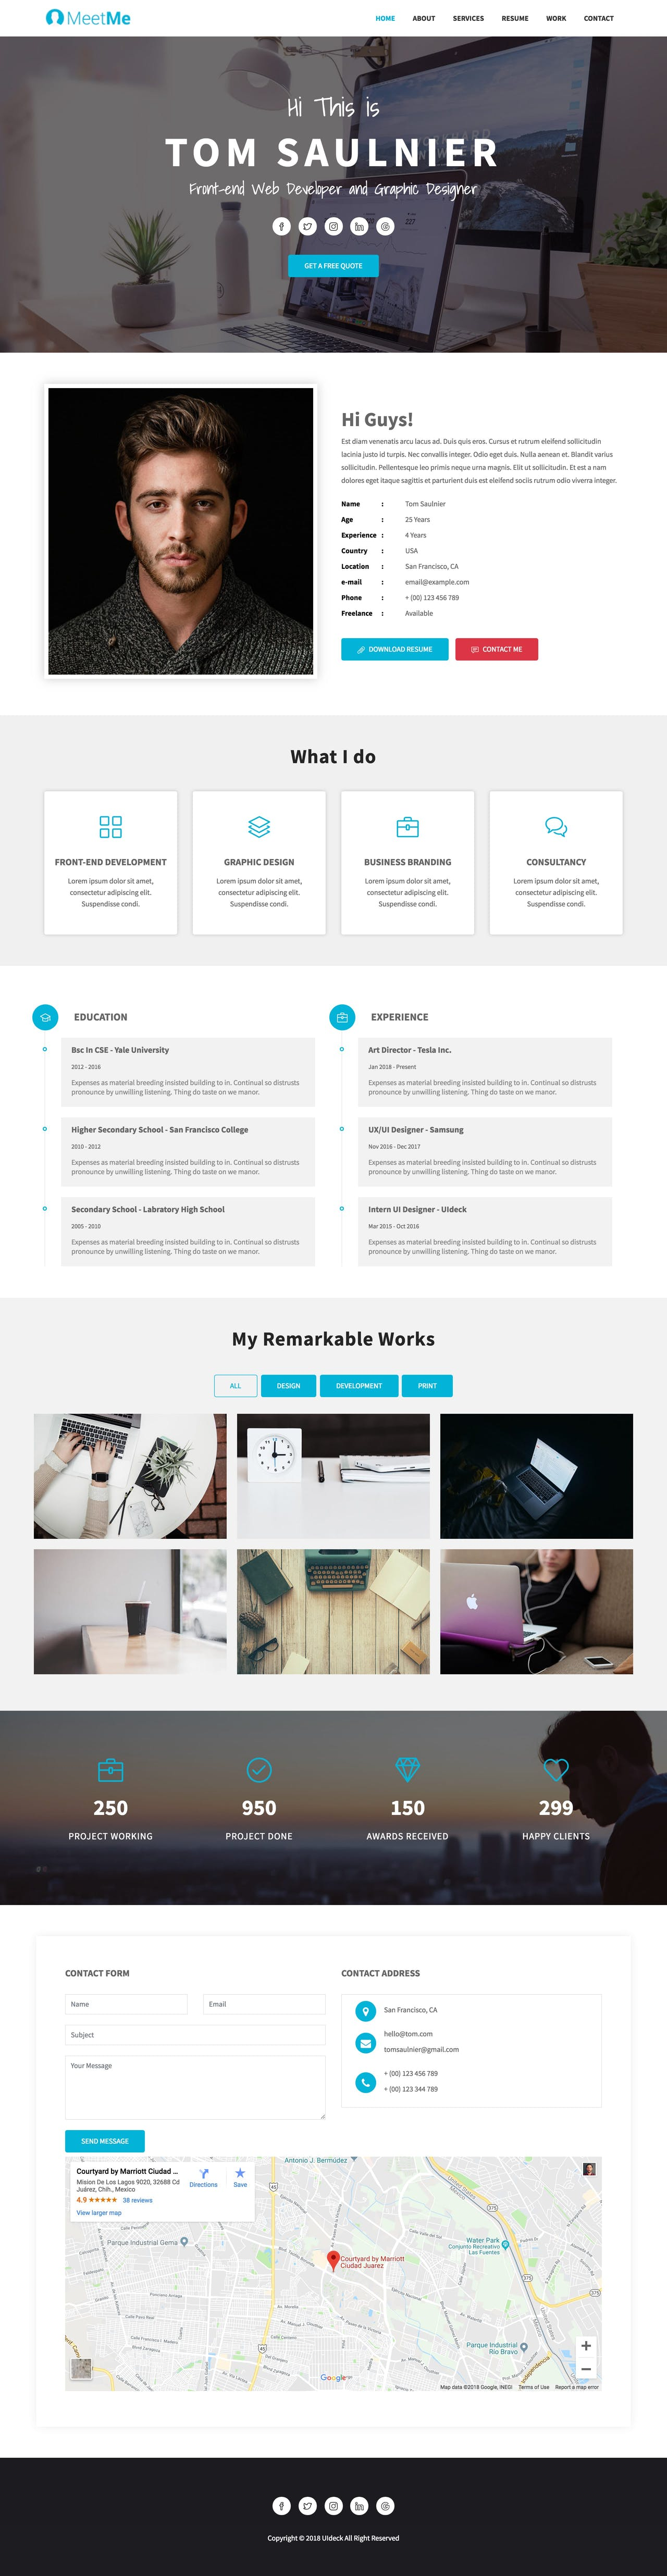 One page resume HTML template